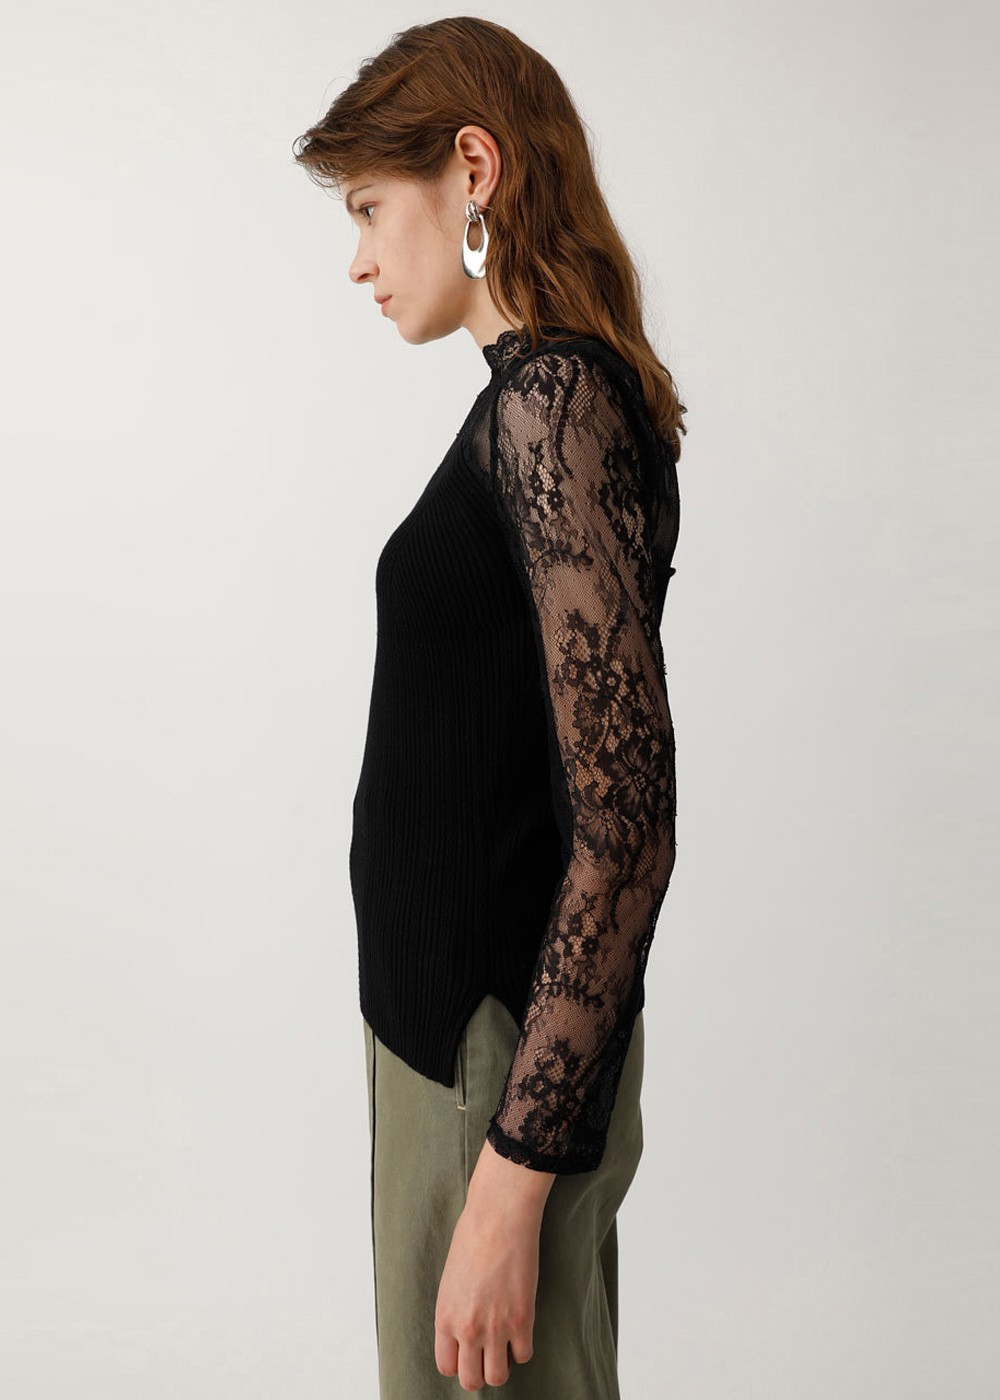 【最大60%OFF】LACE KNIT COMBI TOP|BLK|ニット|MOUSSY